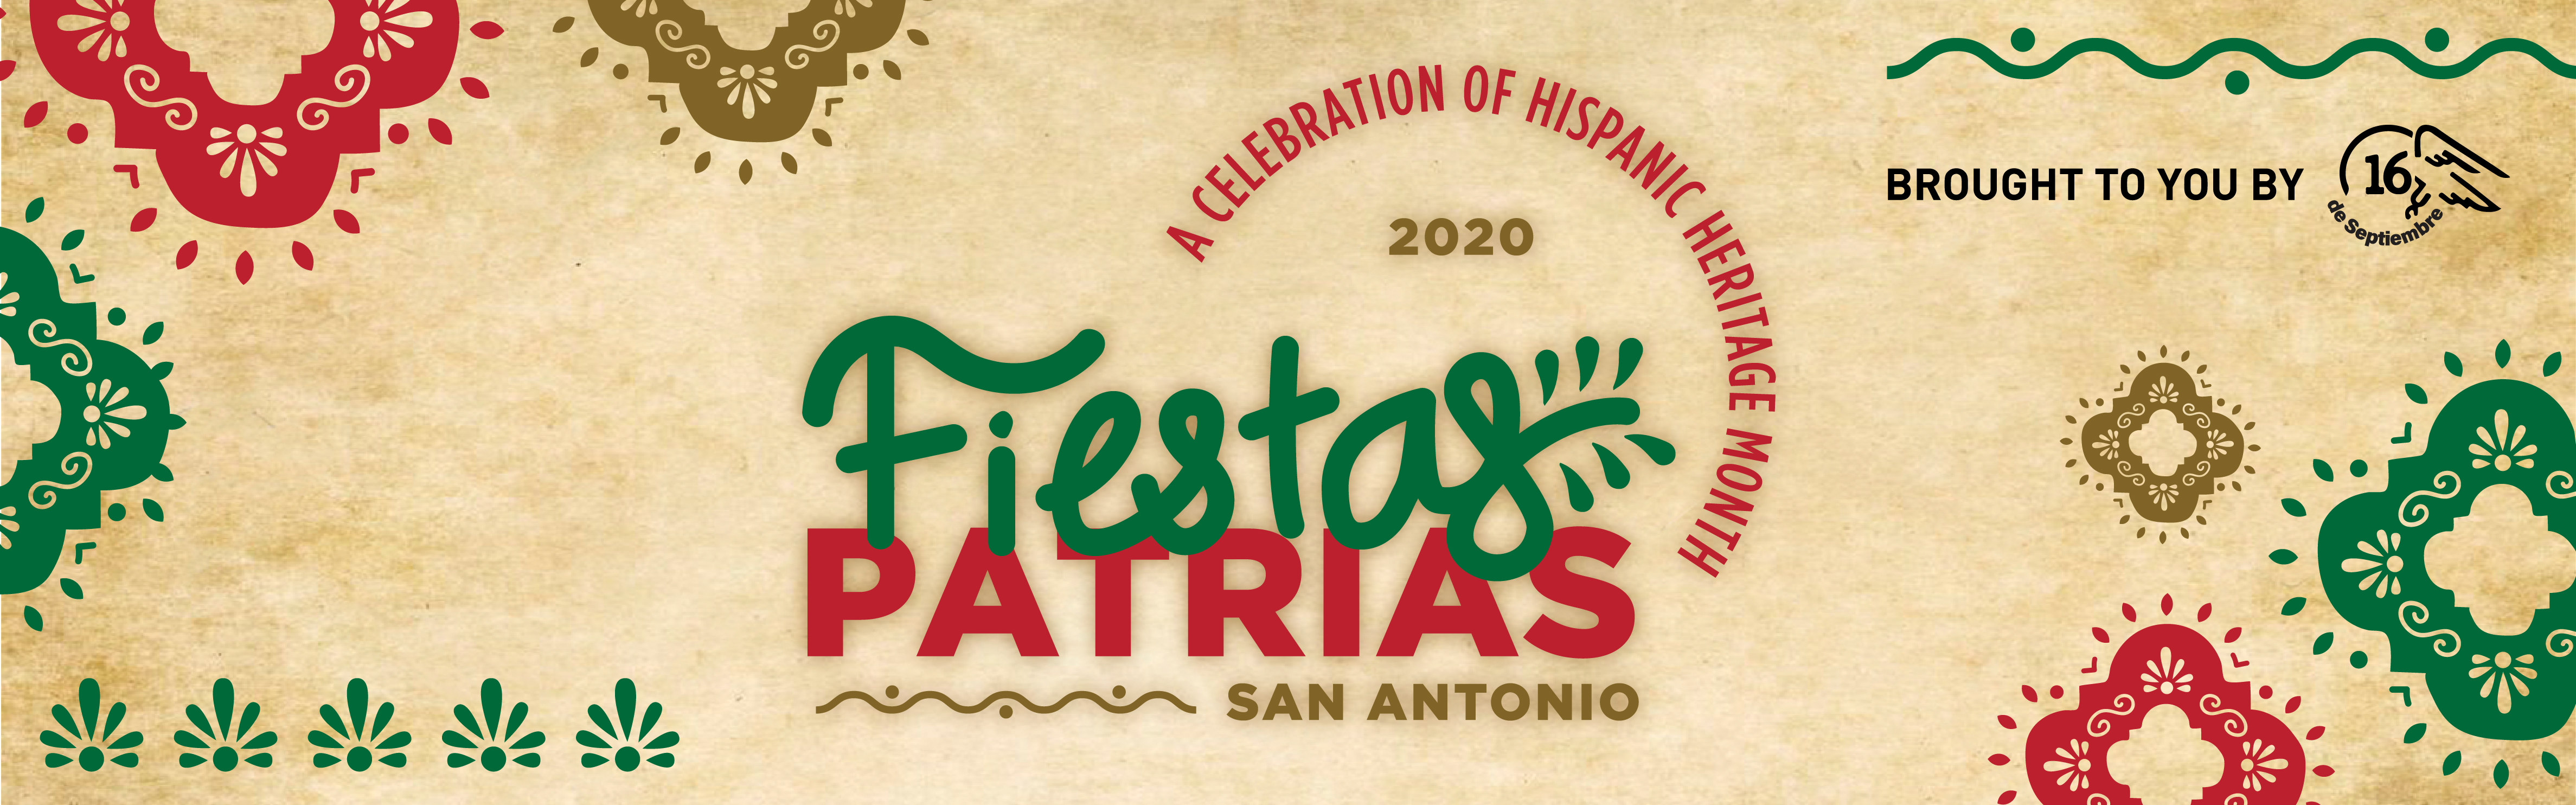 Fiestas Patrias San Antonio: a celebration of Hispanic Heritage Month, brought to you by 16 de Septiembre.